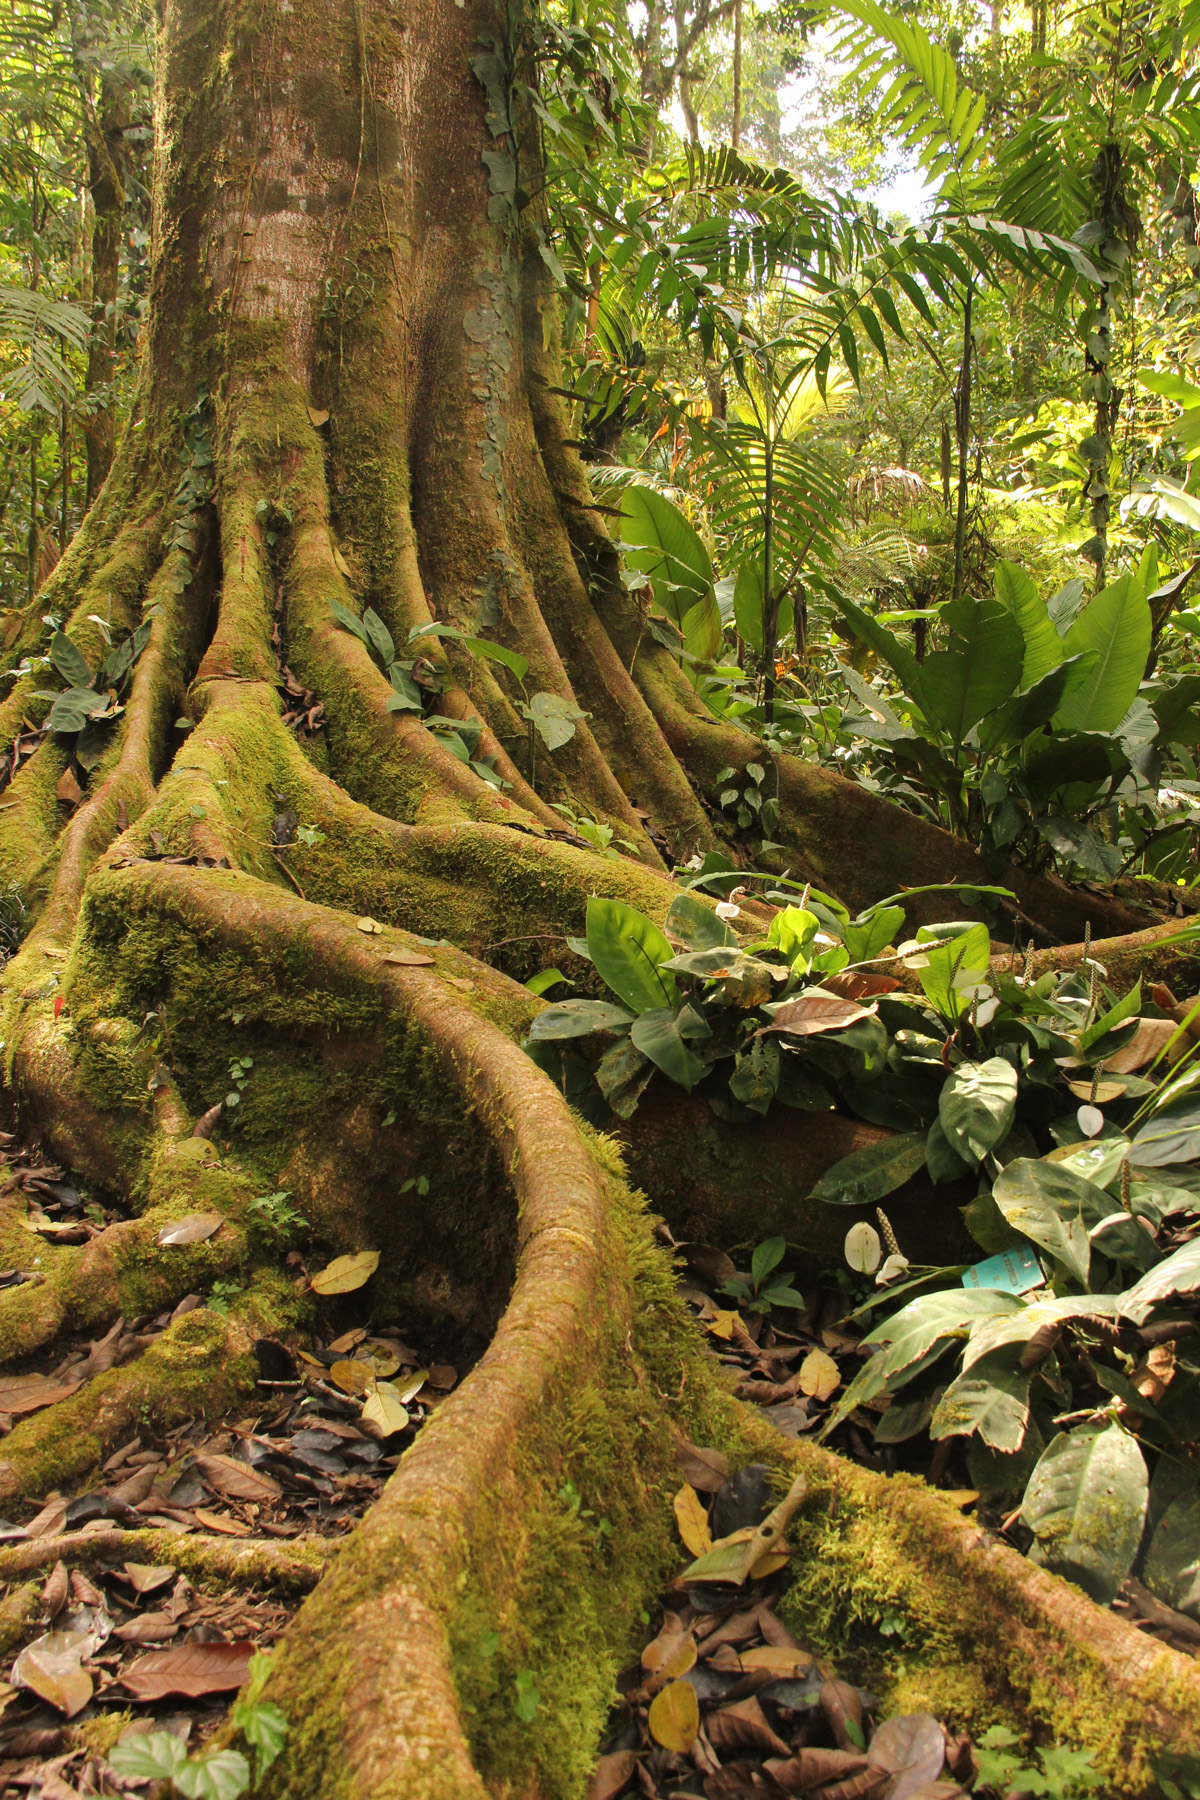 Tree roots are an often overlooked but very important aspect of tree anatomy.